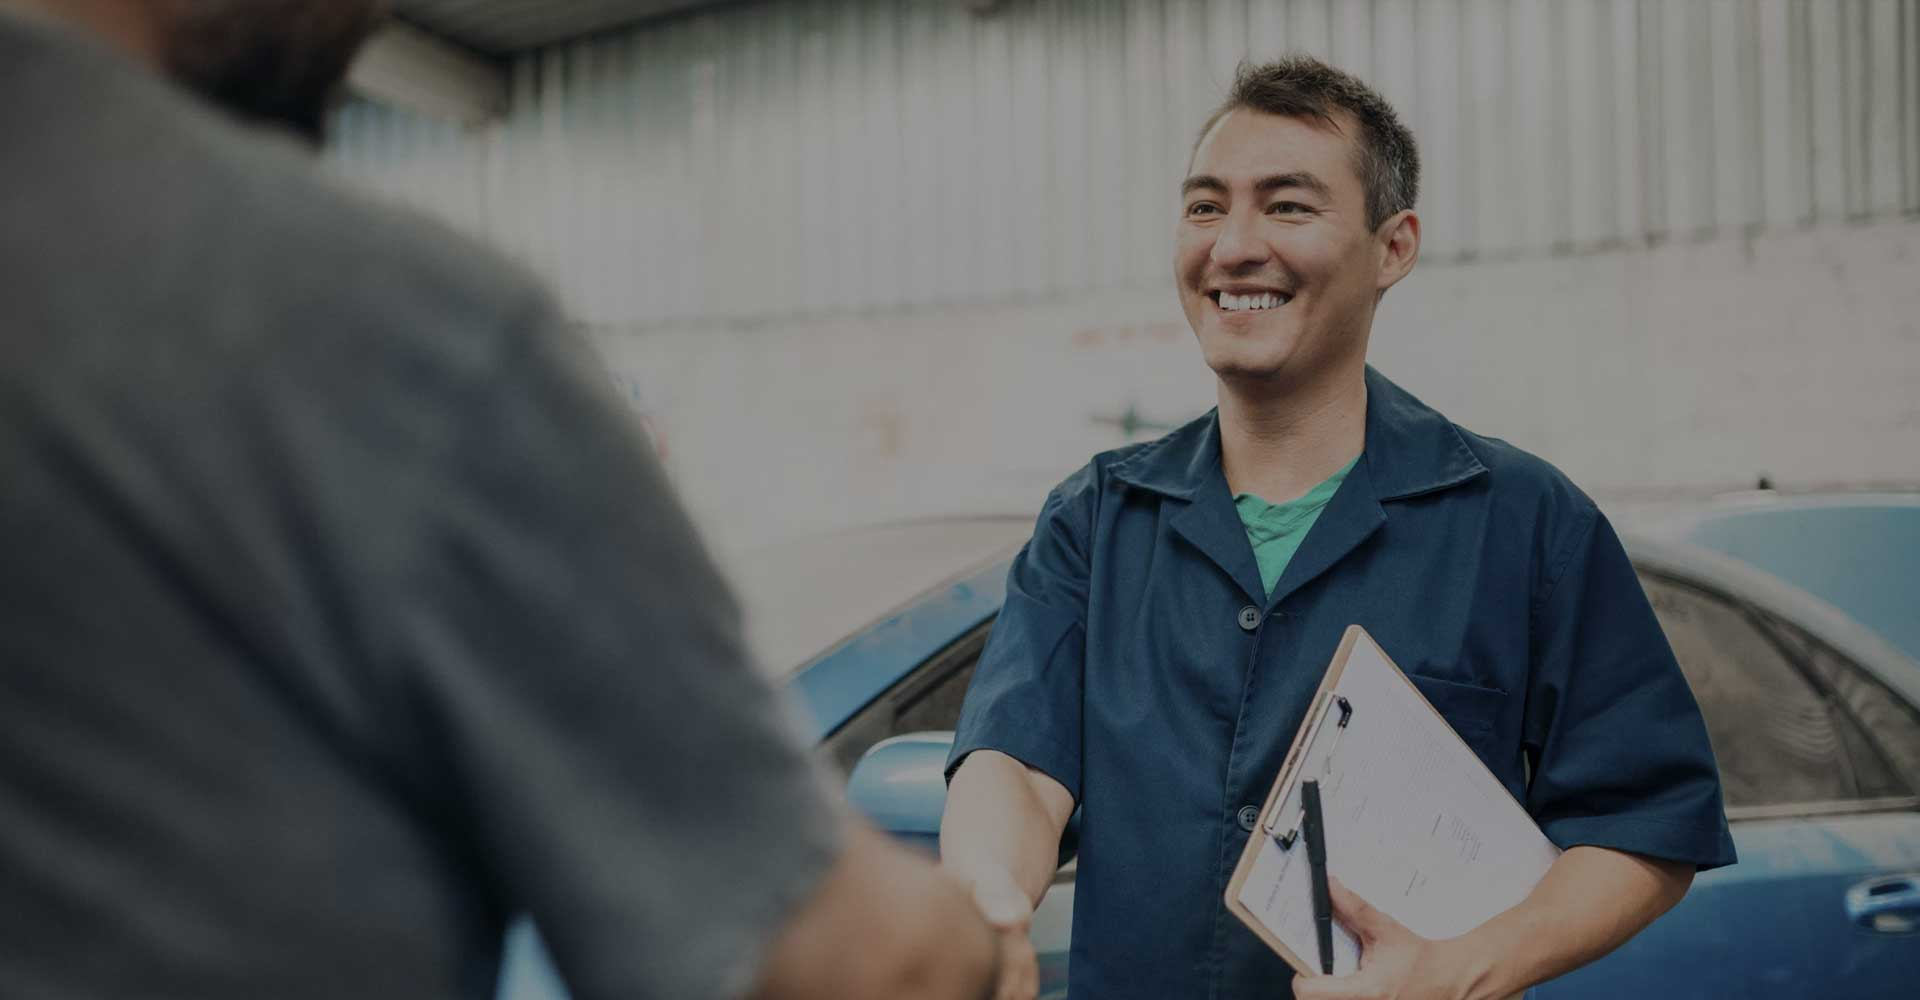 Man buying a vehicle with a failed MOT